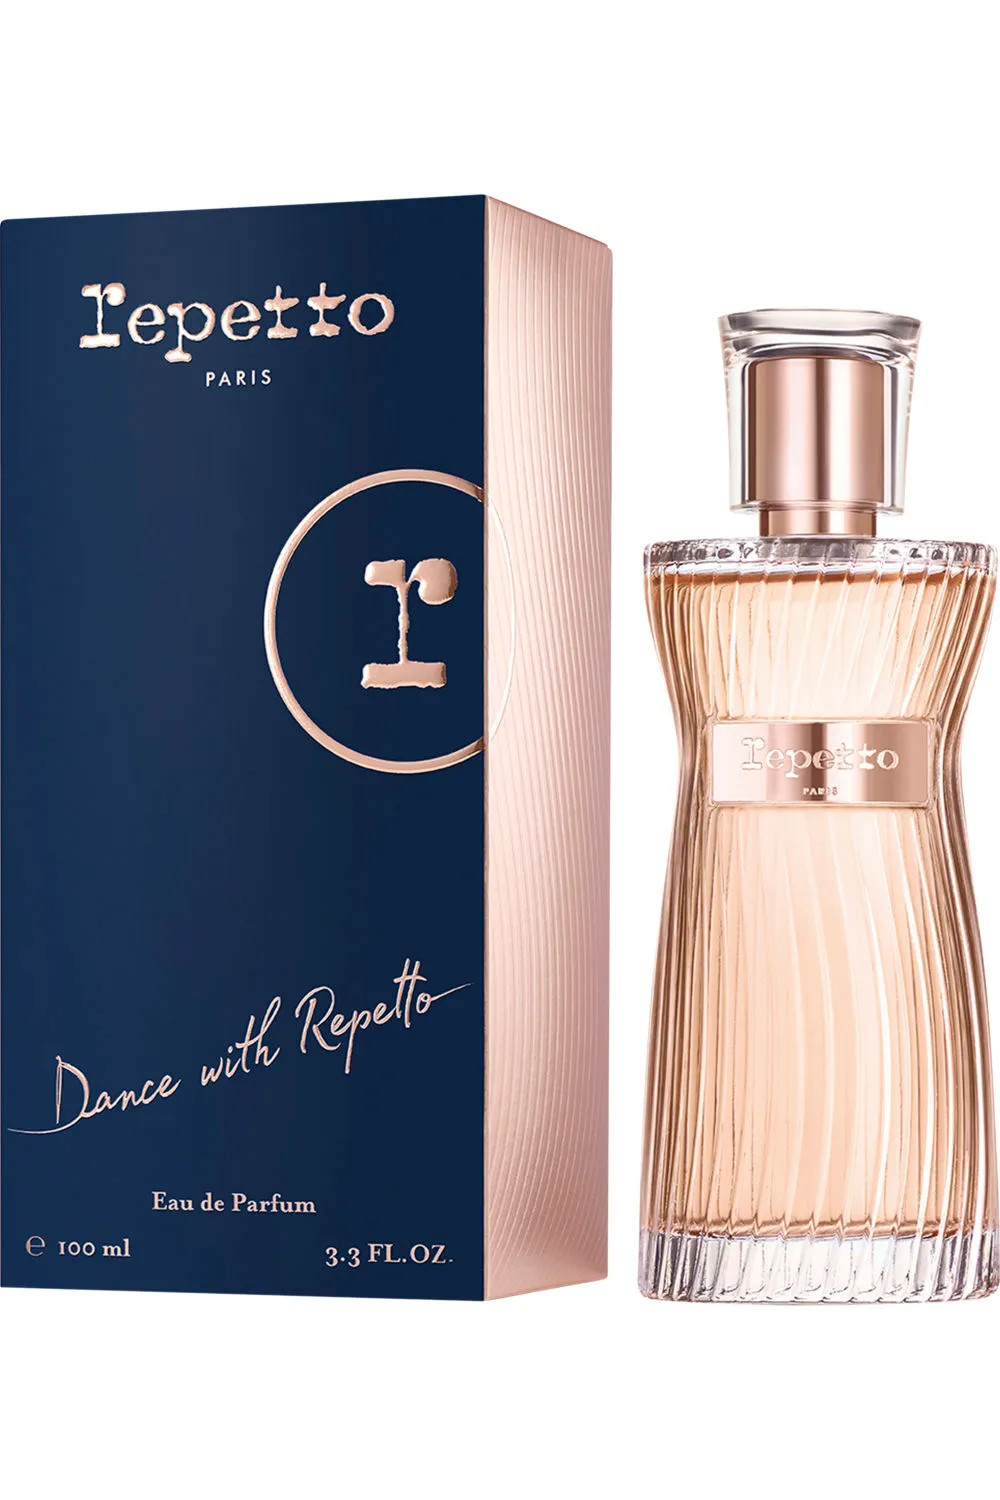 EDP DANCE WITH REPETTO 60ML